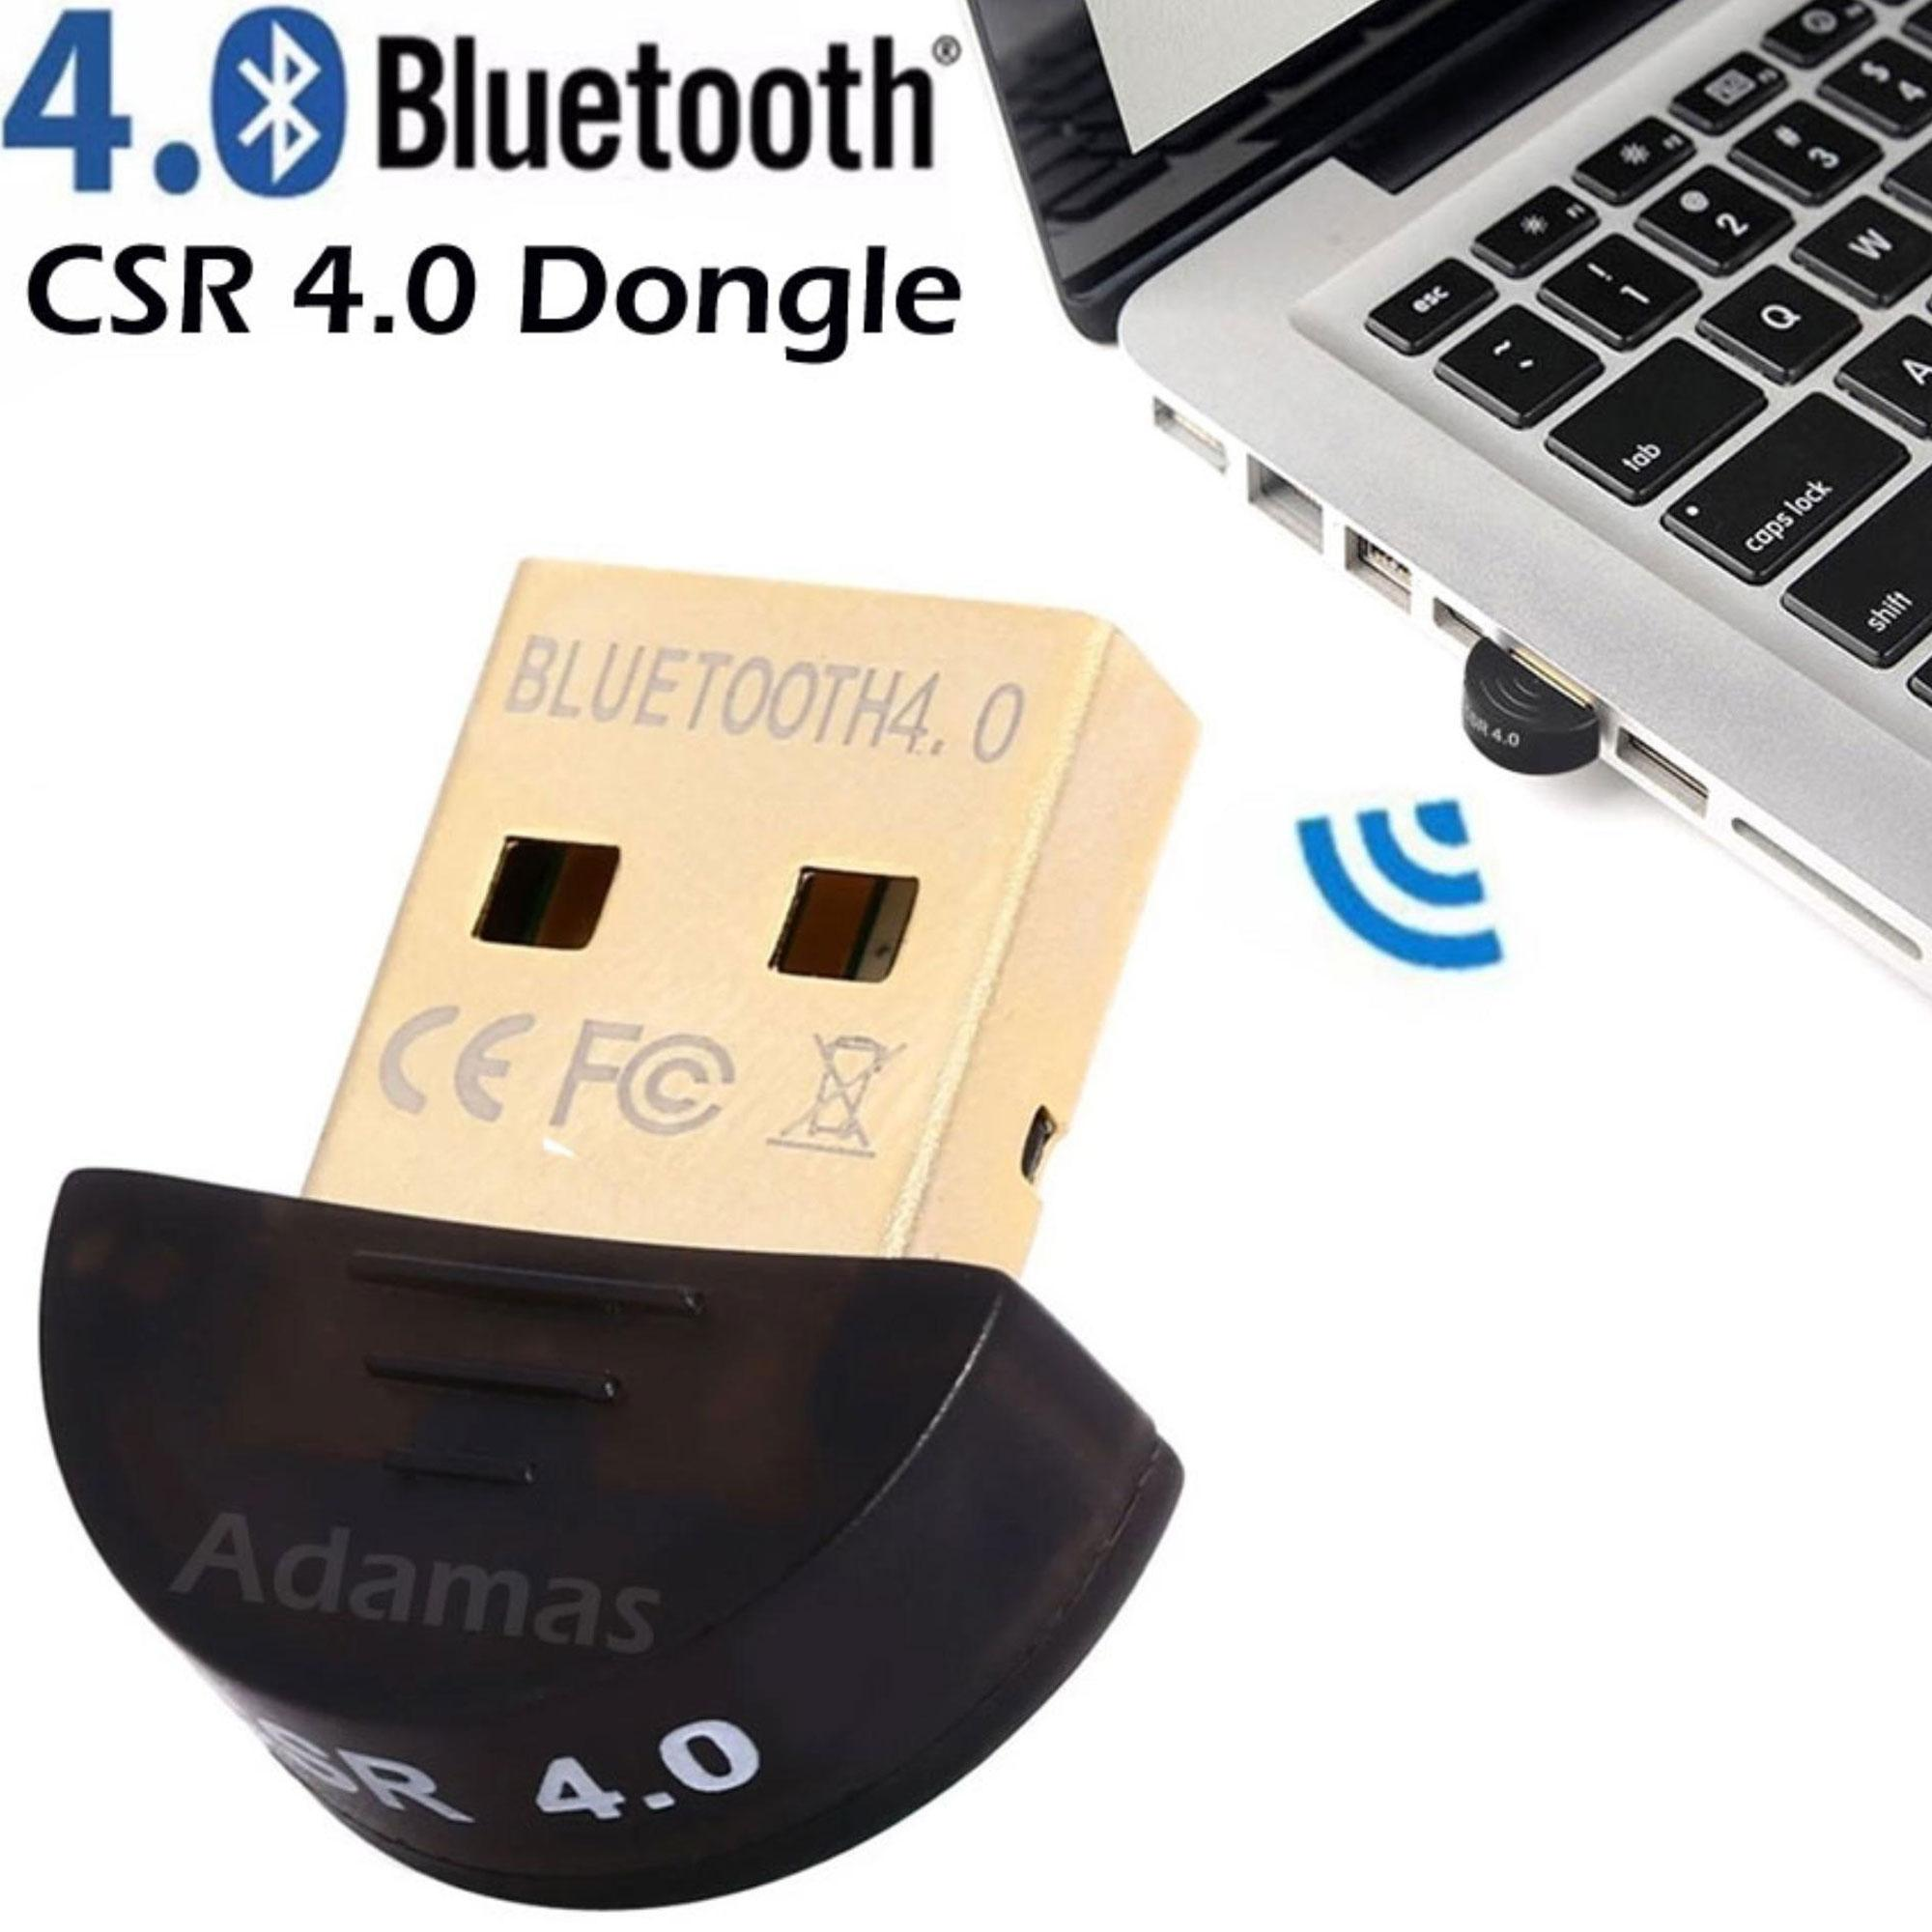 Mini Usb Csr 4.0 Bluetooth Adaptor Dual Mode Wireless Dongle By Adamas.